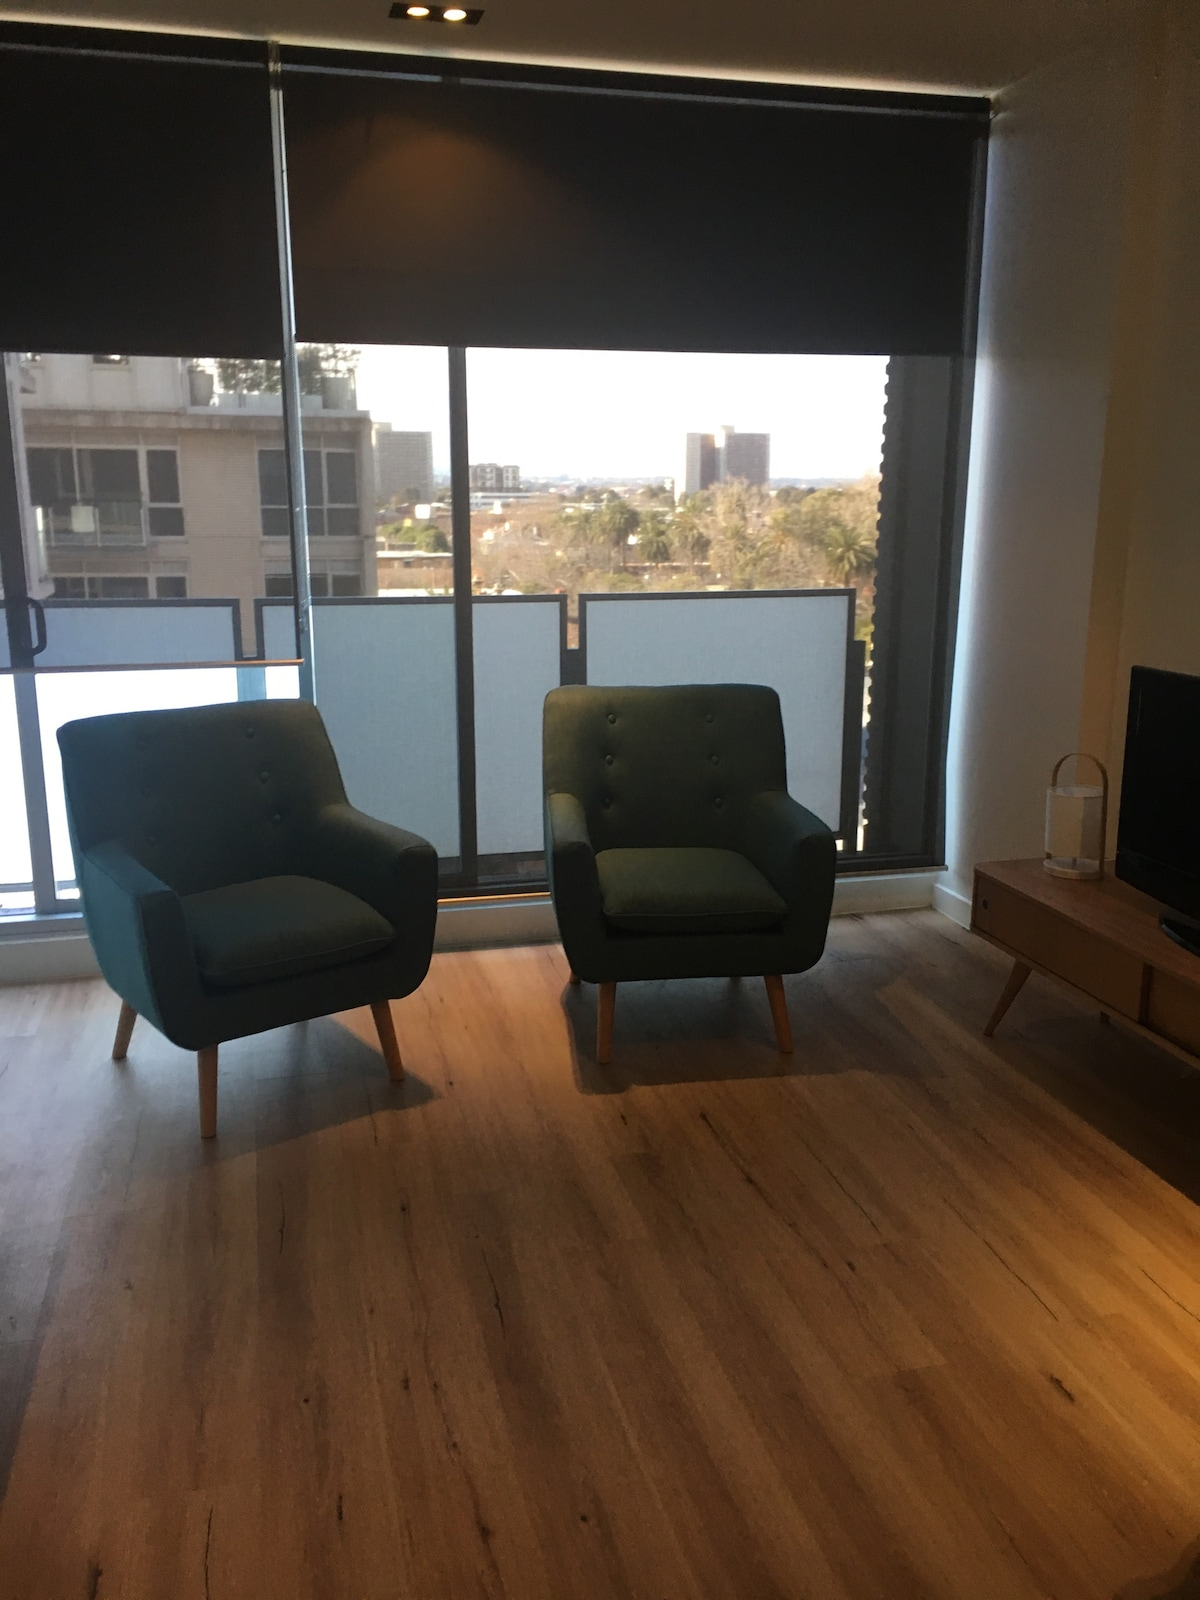 chrome kitchen chairs aid 6qt bella's space - apartments for rent in east melbourne ...